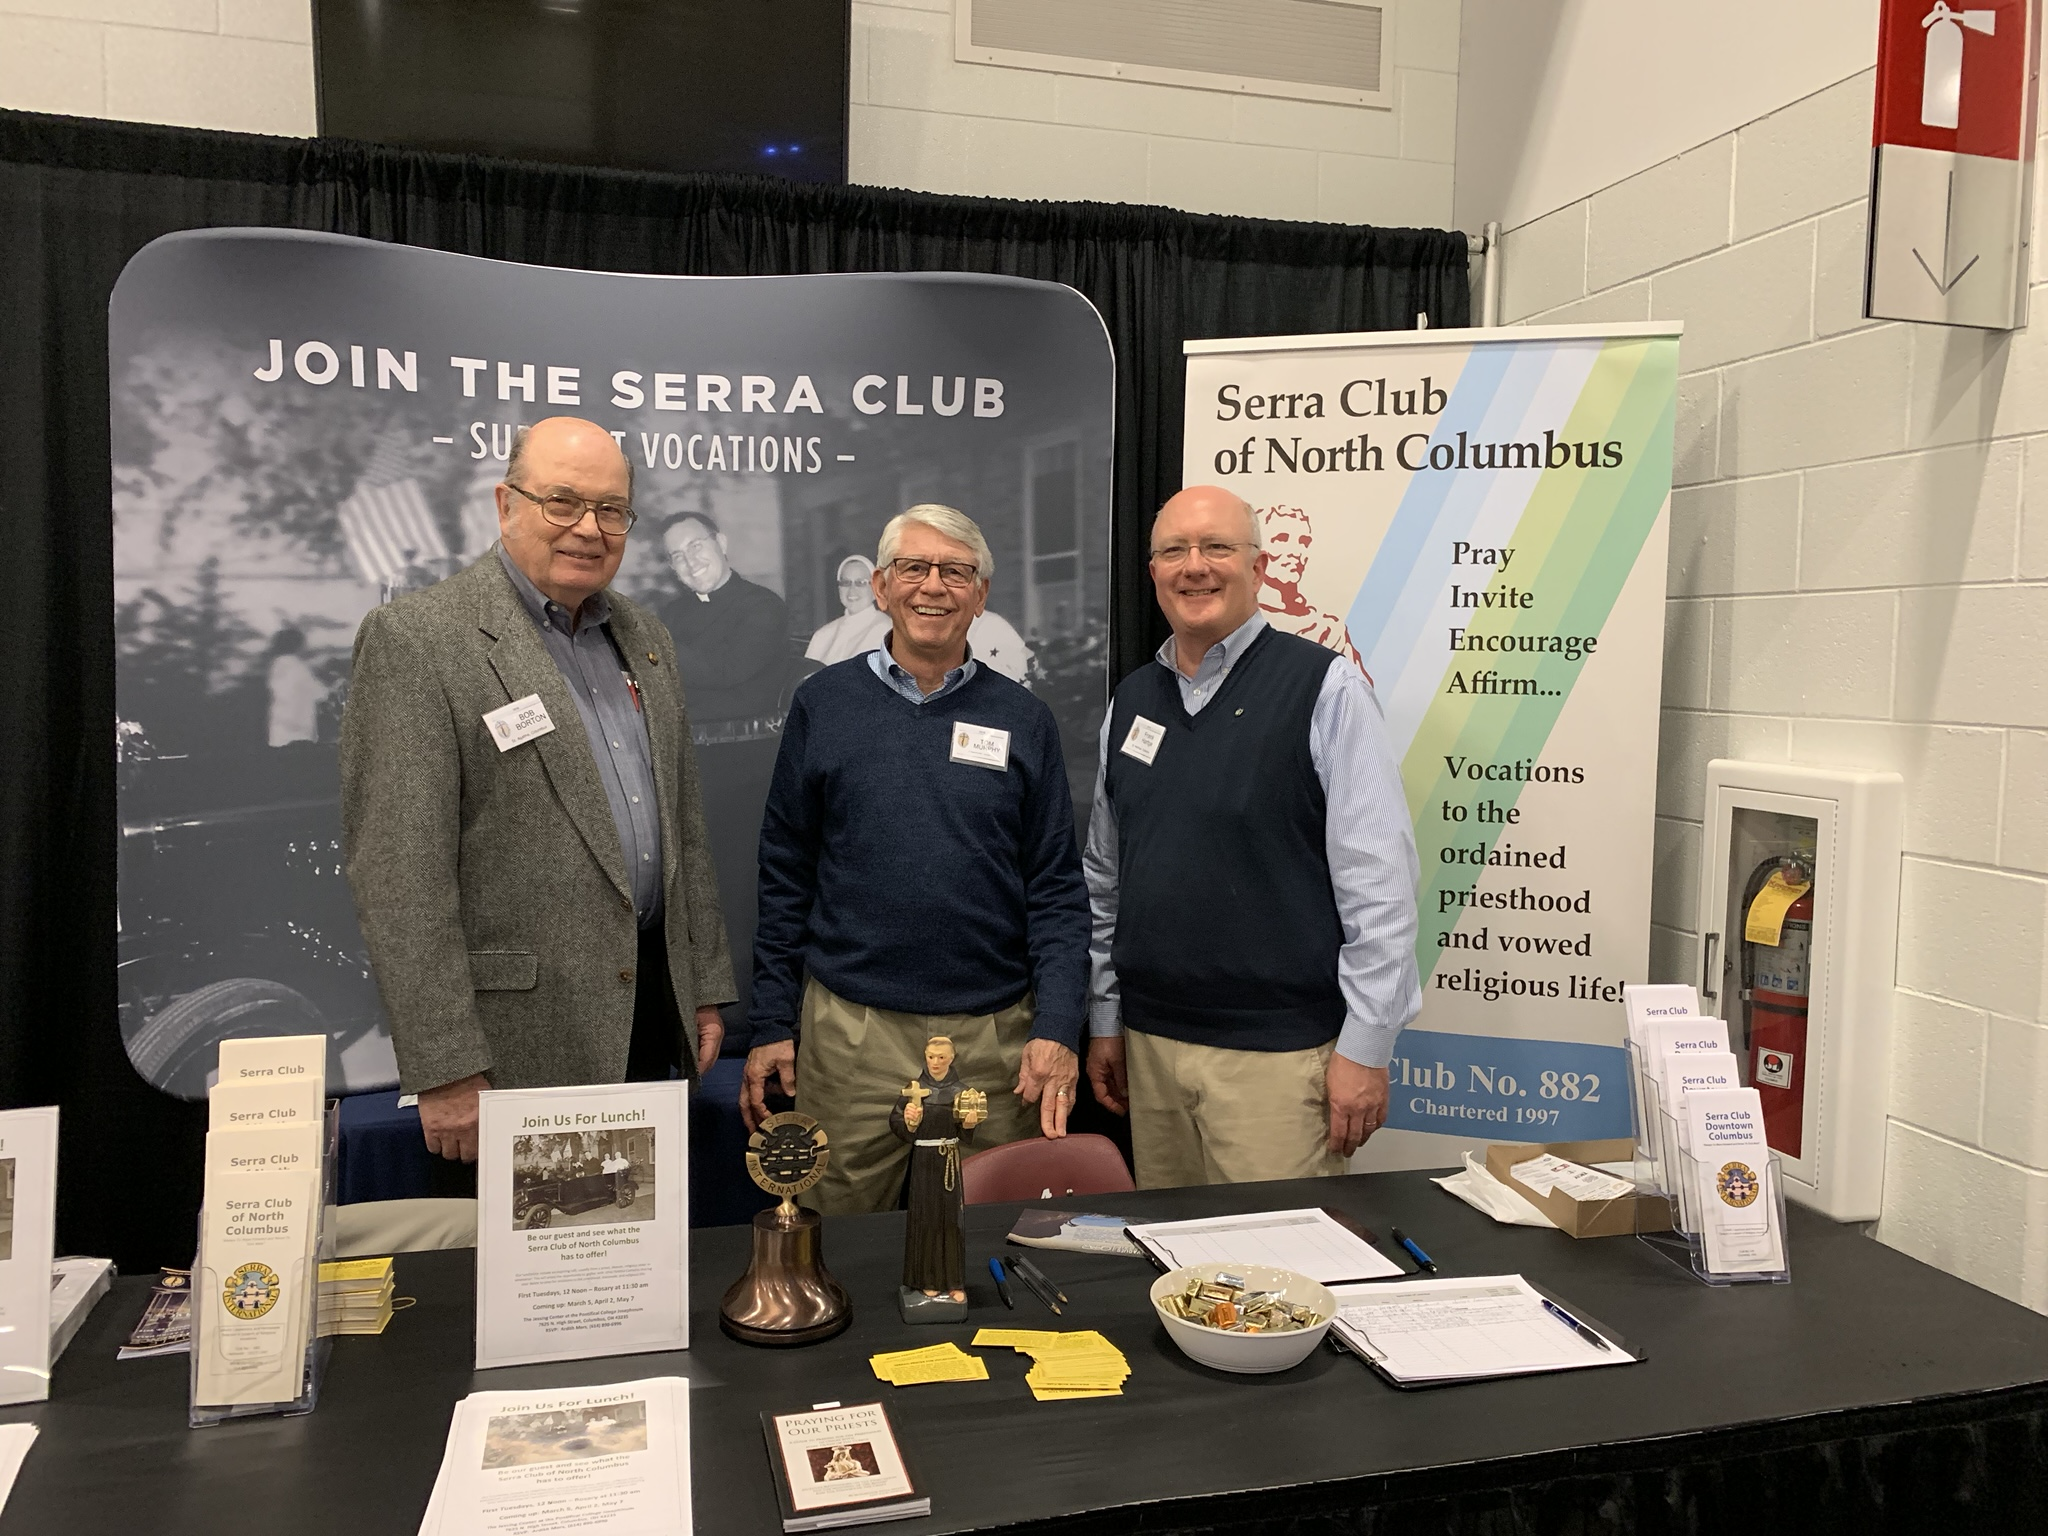 Serra Clubs at the Columbus Catholic Men's Conference, Saturday, February 23, 2019